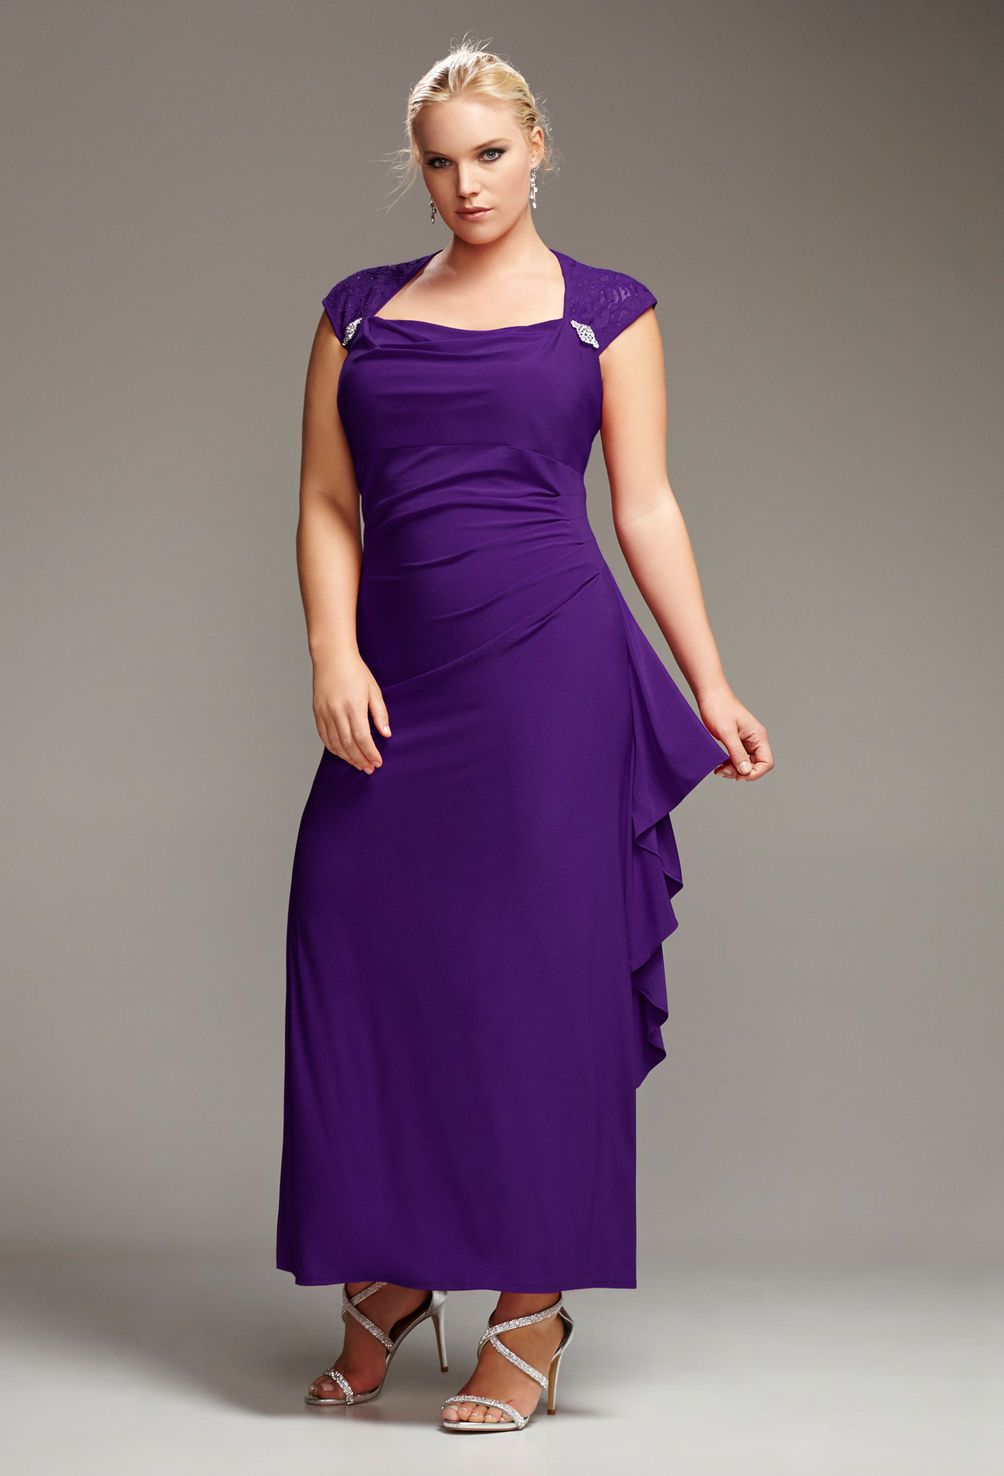 Plus size fashion clothing including tops, pants, dresses ...